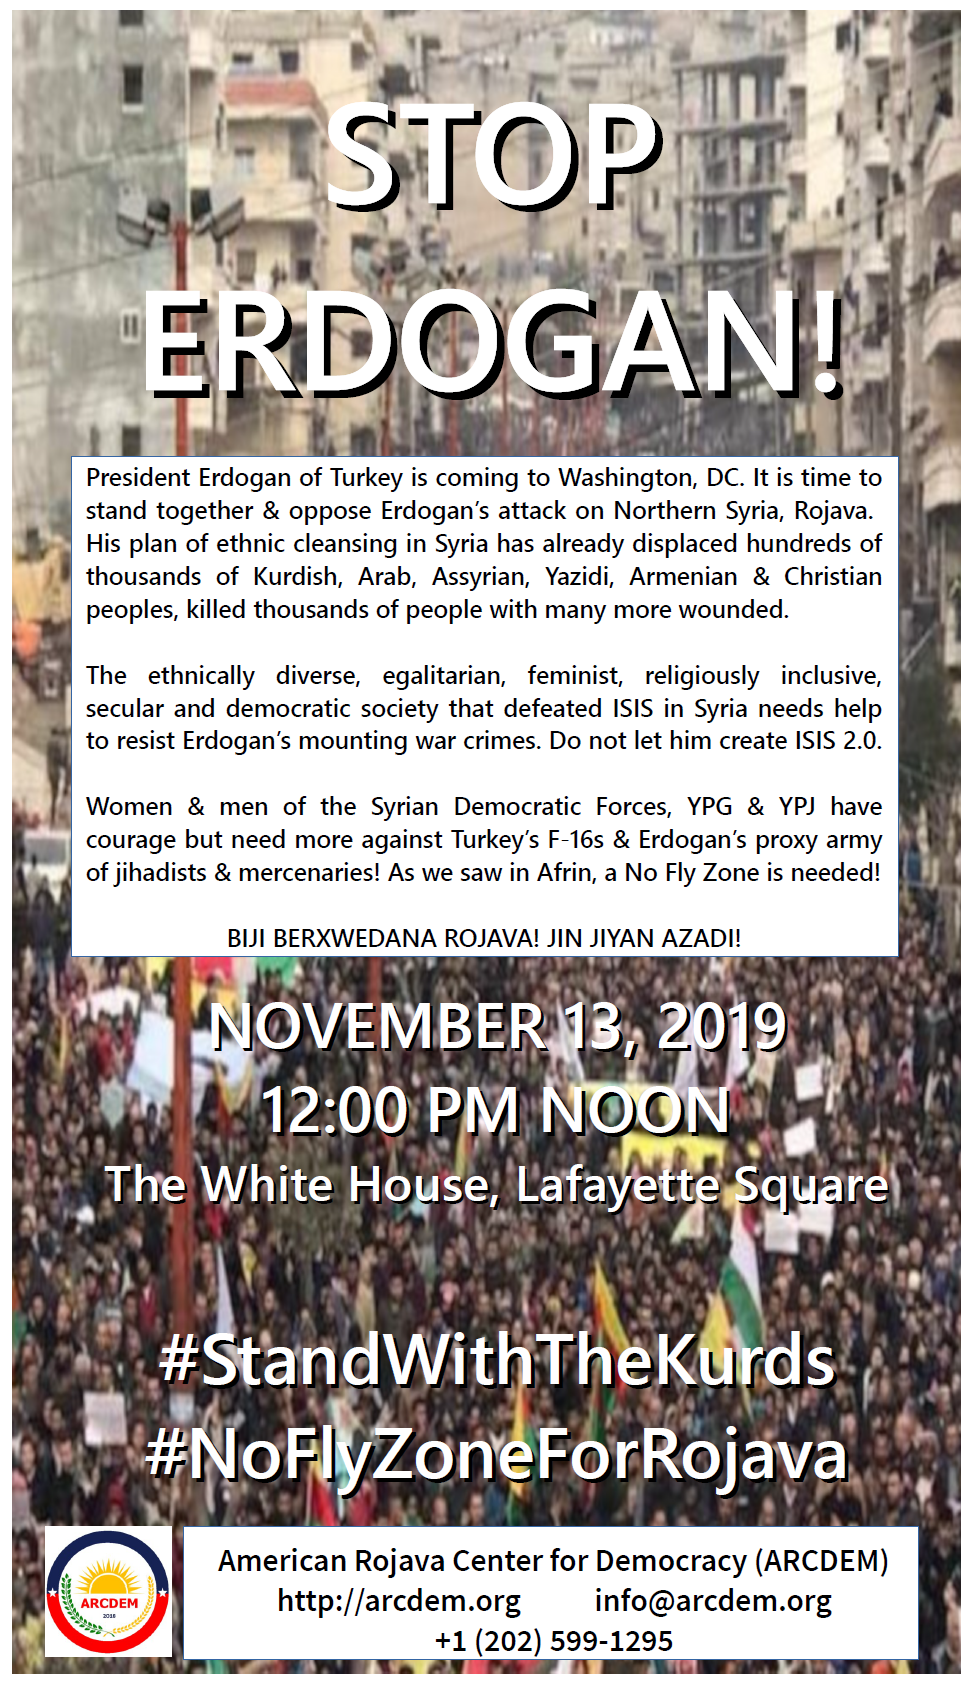 Stop Erdogan November 13 protest flyer